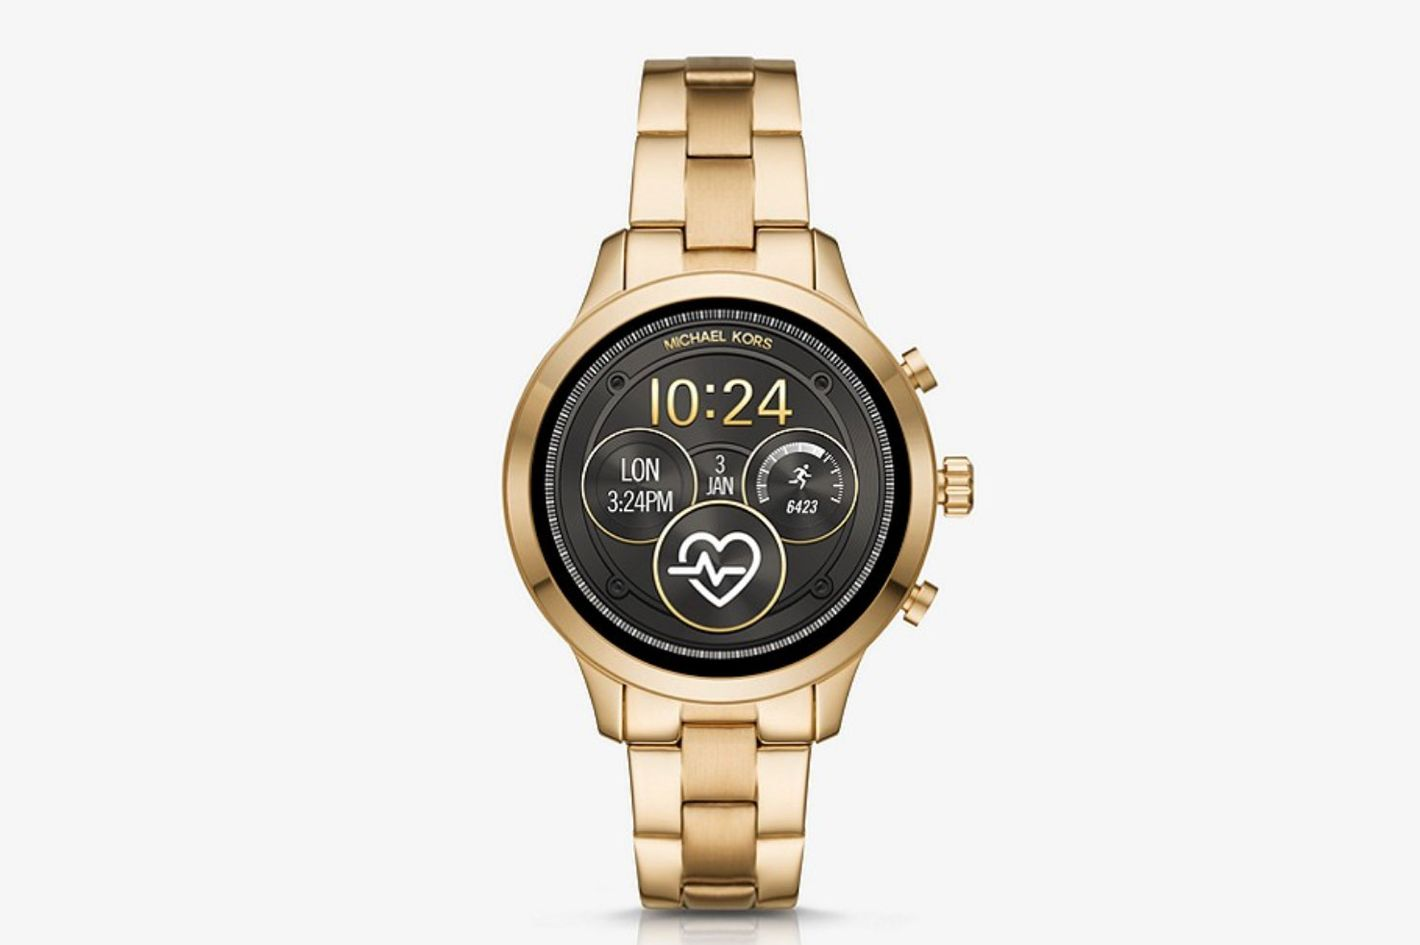 46 Best Christmas Gifts for Mom 2018 - Gift Ideas for Moms